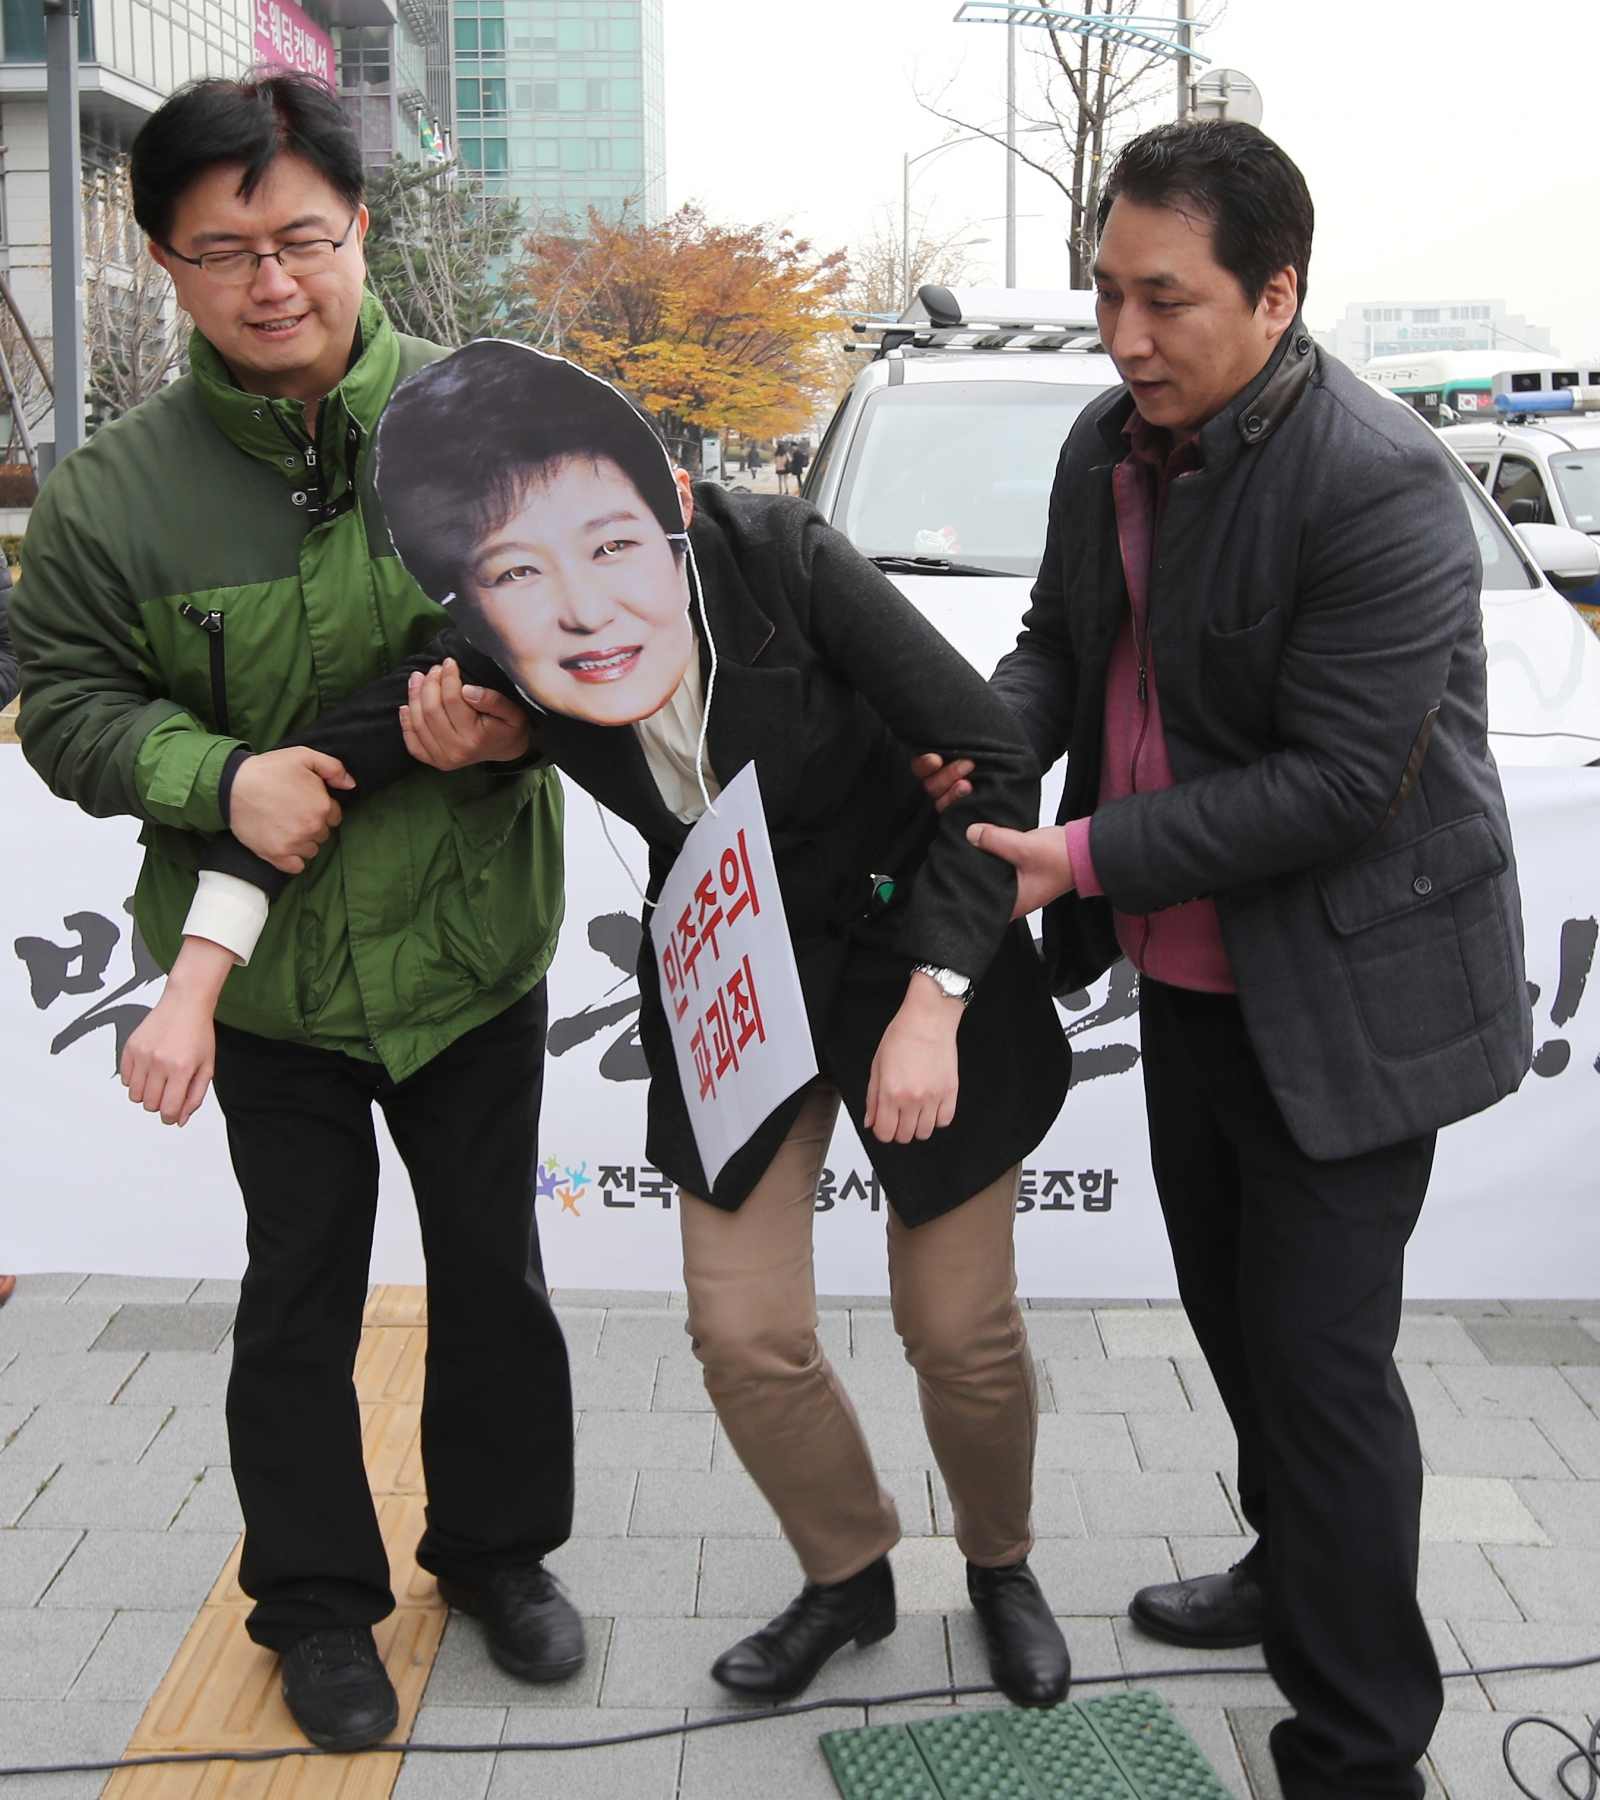 South Korea political crisis